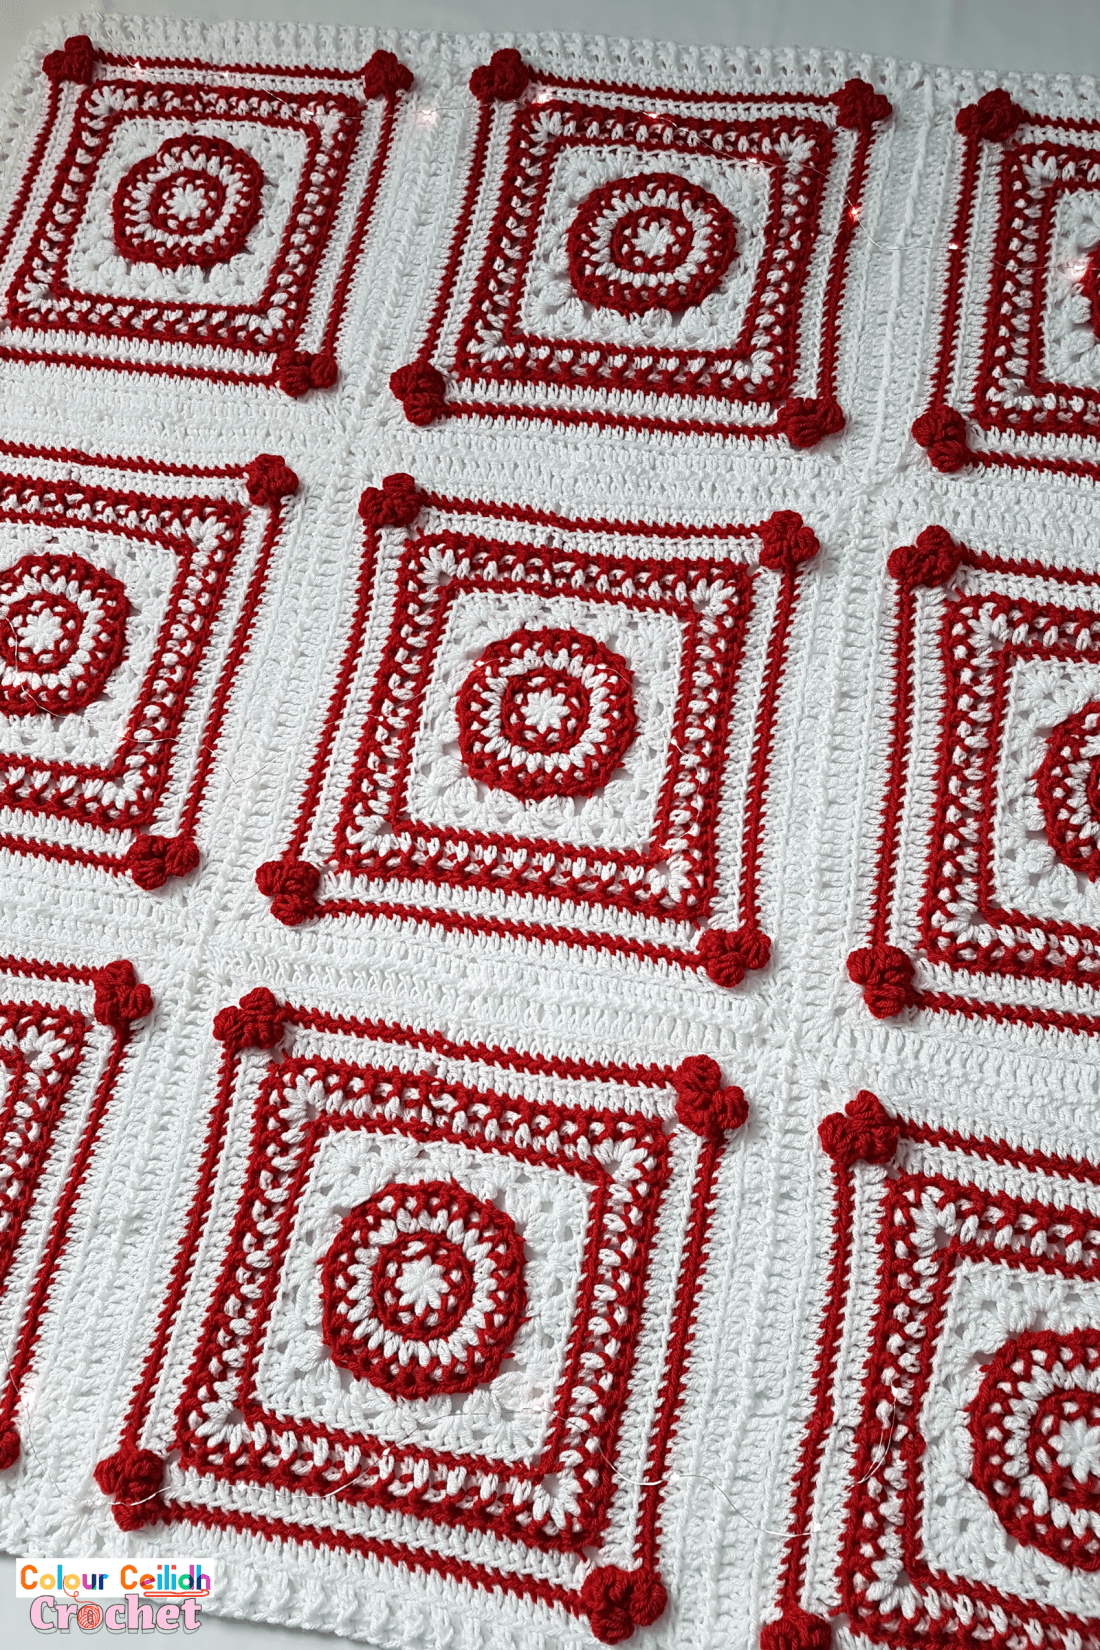 This Christmas crochet blanket pattern is a Scandinavian style afghan with bobble hearts and eight-pointed Nordic stars. Using worsted weight yarn I combine two bold red and white colors for maximum effect to instantly set the Christmas atmosphere. This free pattern includes a YouTube video tutorial. Matching Scandinavian style crochet baubles are available as a separate pattern.